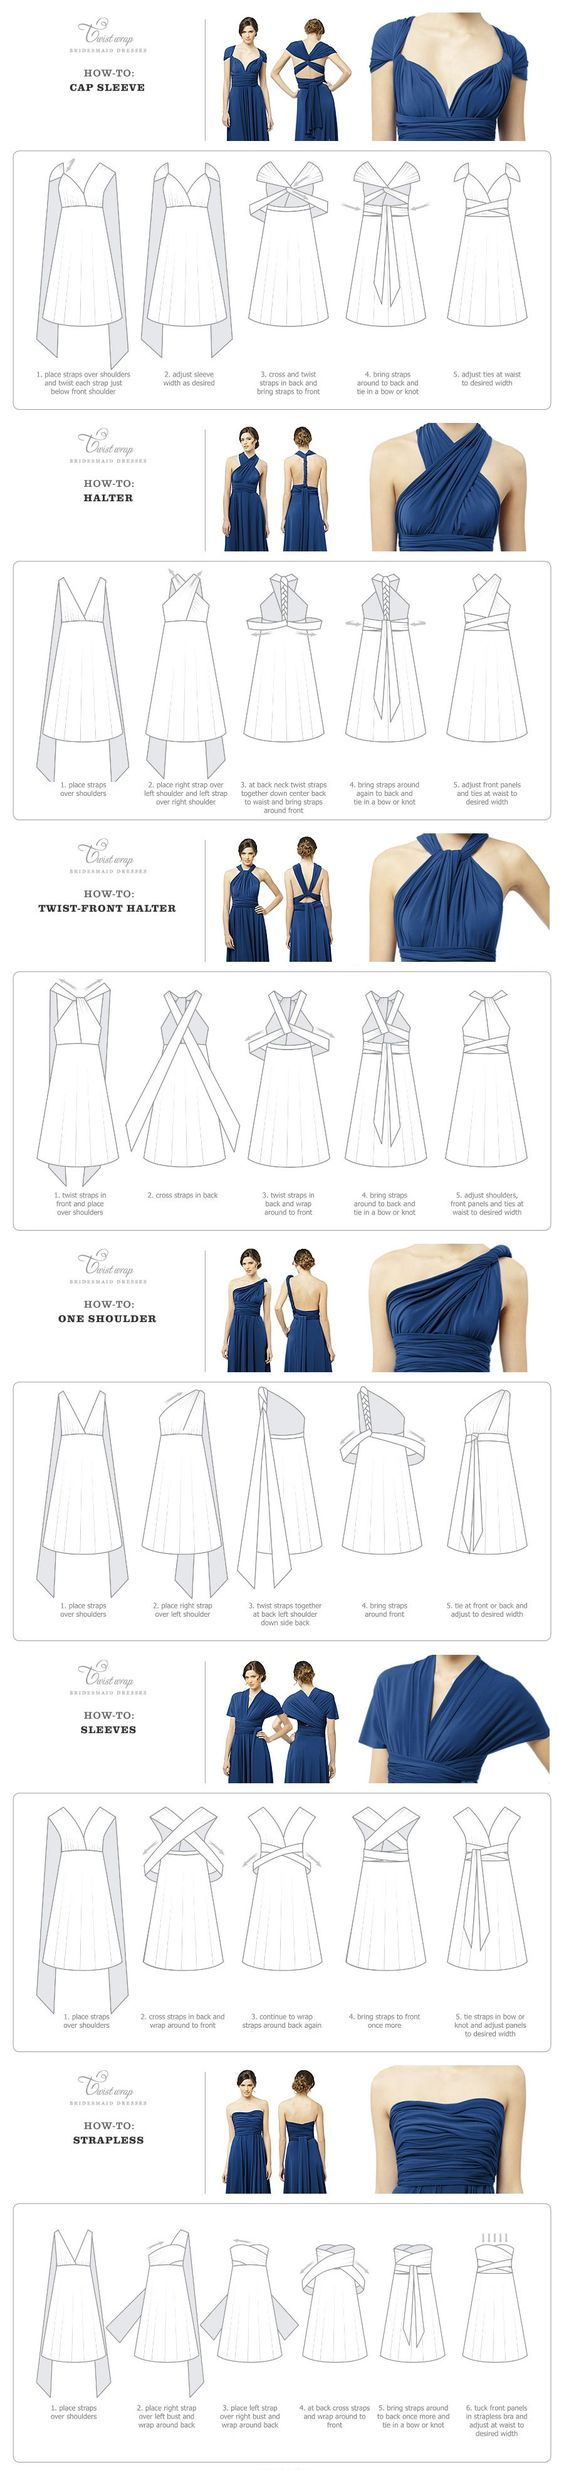 Infinity dress - How-To-Wear Instructions - will have to add one of these to my closet at some point.